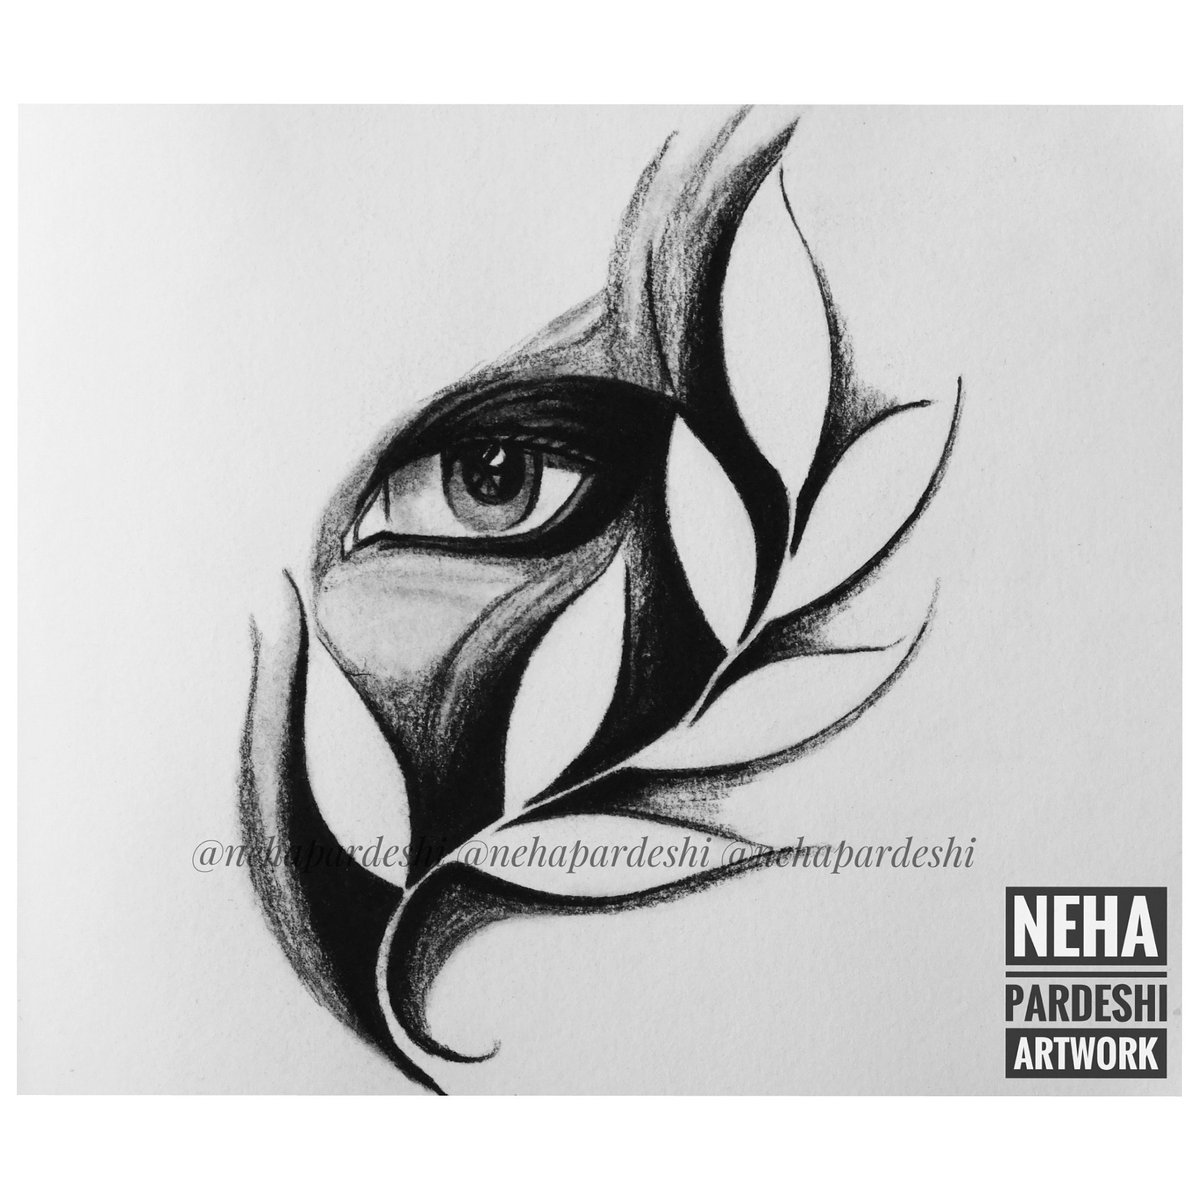 Nehapardeshiartwork hashtag on twitter